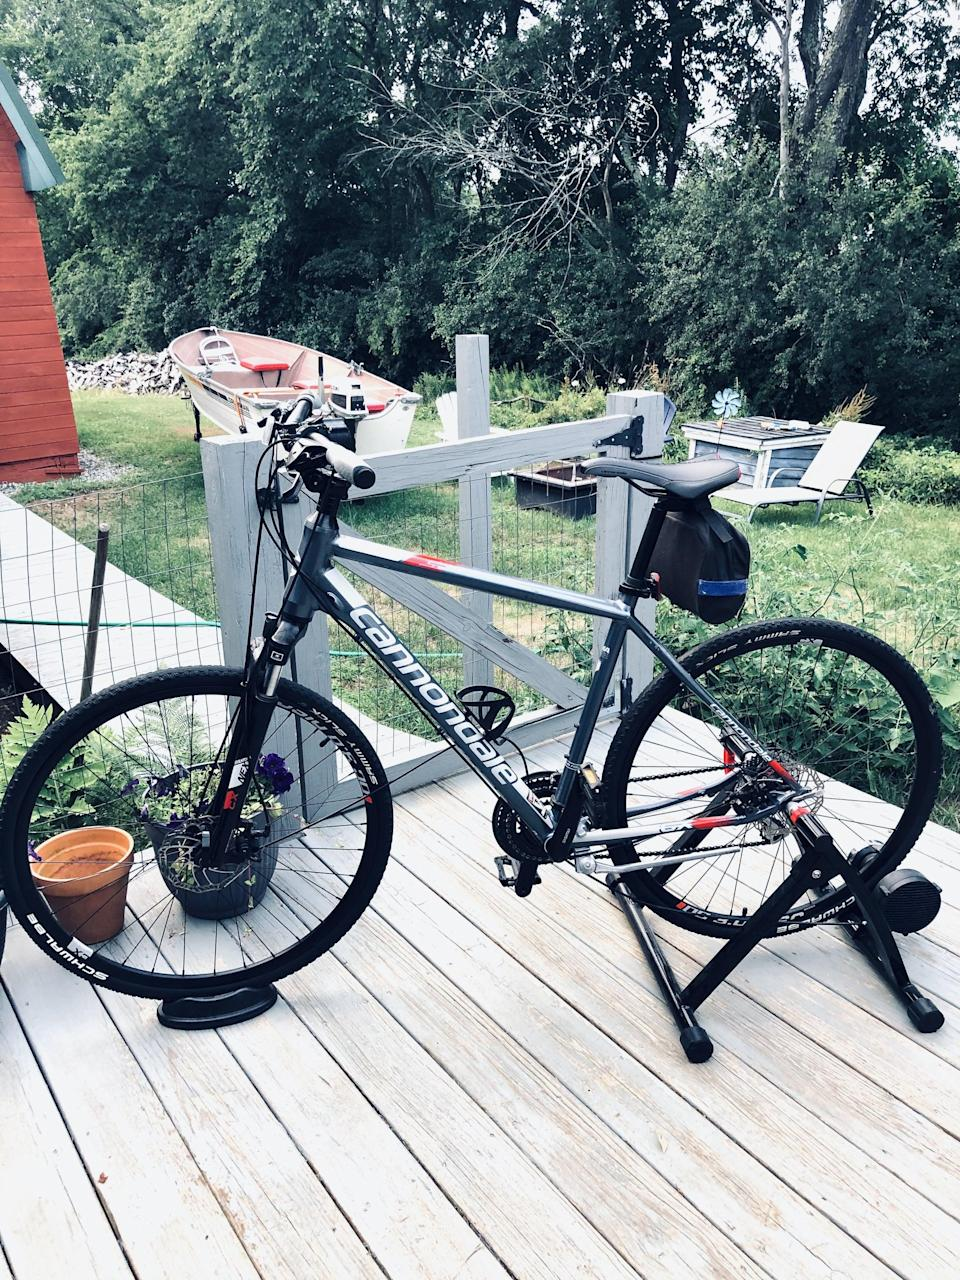 """<p>""""I grew a knack for indoor cycling, so like many of us when stay-at-home orders hit, I was pretty disappointed to miss out on my weekly classes. It wasn't until I moved back home and stumbled across the <span>Sportneer Bike Trainer Stand</span> ($115, originally $130) that I realized I can get a similar workout, affordably. I like this bike stand for many reasons - one being that if you have an outdoor bike, all you have to do is pop it on, lock it, and set your resistance to ride it stationary. And once you're ready for an outdoor ride, you can press down on the clamp in the back and your bike will release and be ready to hit the road."""" - Haley Lyndes, editorial assistant, living</p> <p>Read the full <a href=""""https://www.popsugar.com/fitness/sportneer-bike-trainer-stand-review-47619617"""" class=""""link rapid-noclick-resp"""" rel=""""nofollow noopener"""" target=""""_blank"""" data-ylk=""""slk:Sportneer Bike Trainer Stand review"""">Sportneer Bike Trainer Stand review</a>.</p>"""